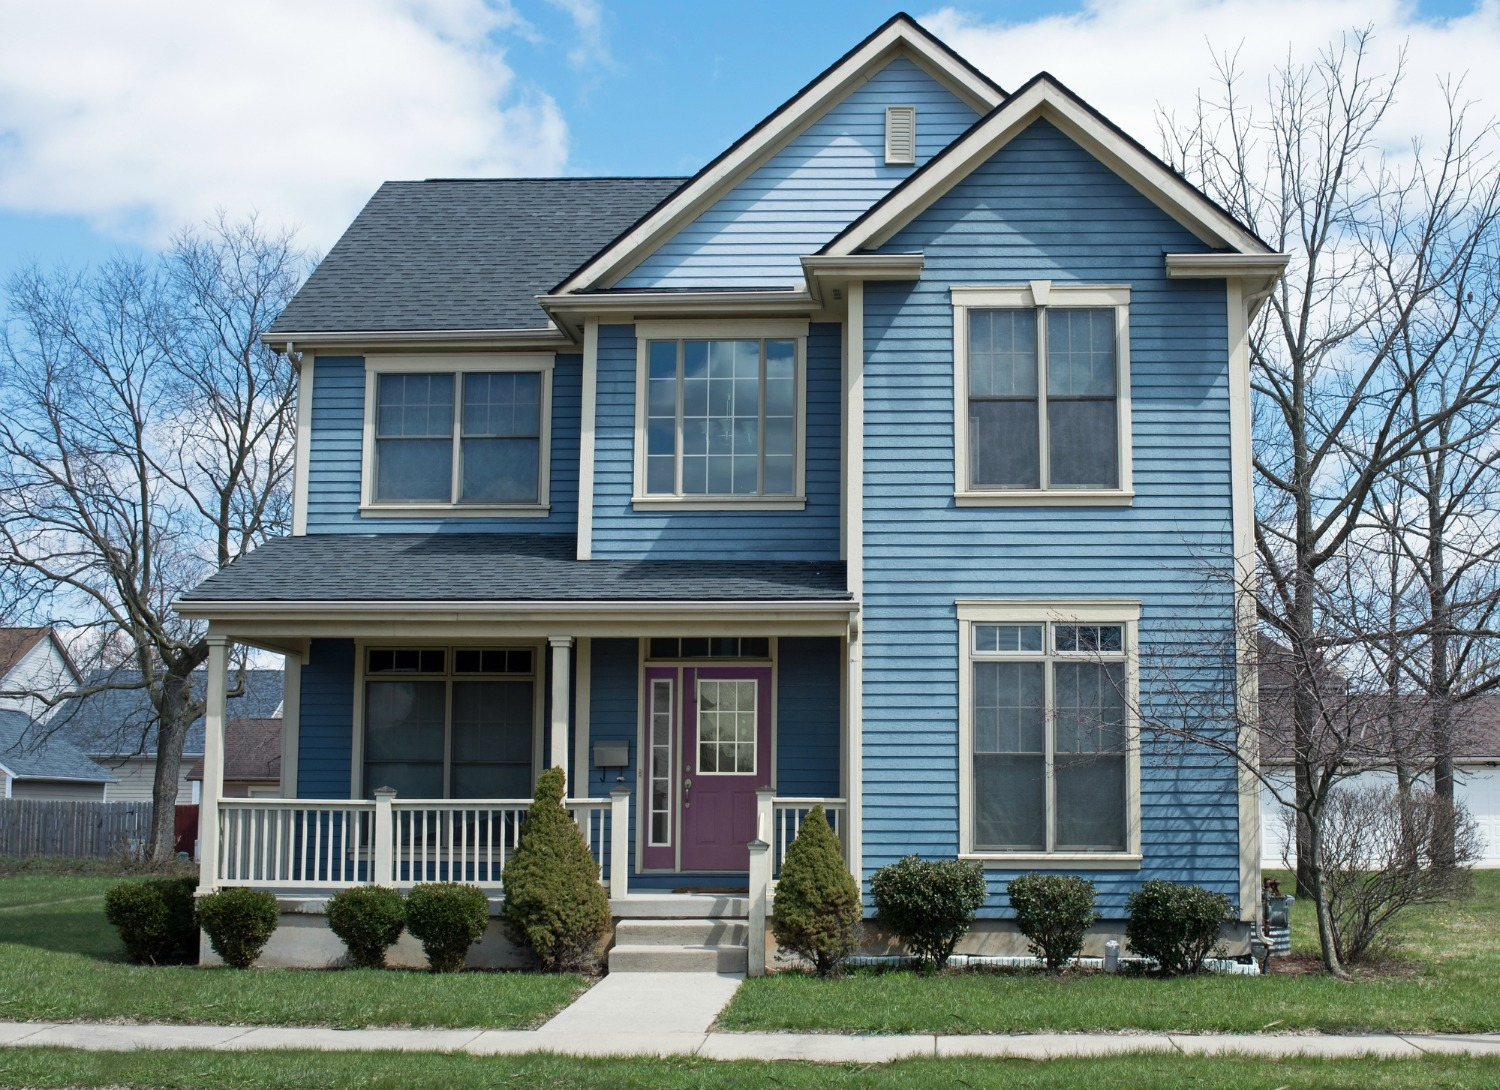 Types Of House Siding Options For Low Maintenance Energy Efficient Home Siding The Cost Of Residing A House The Homebuilding Remodeling Guide